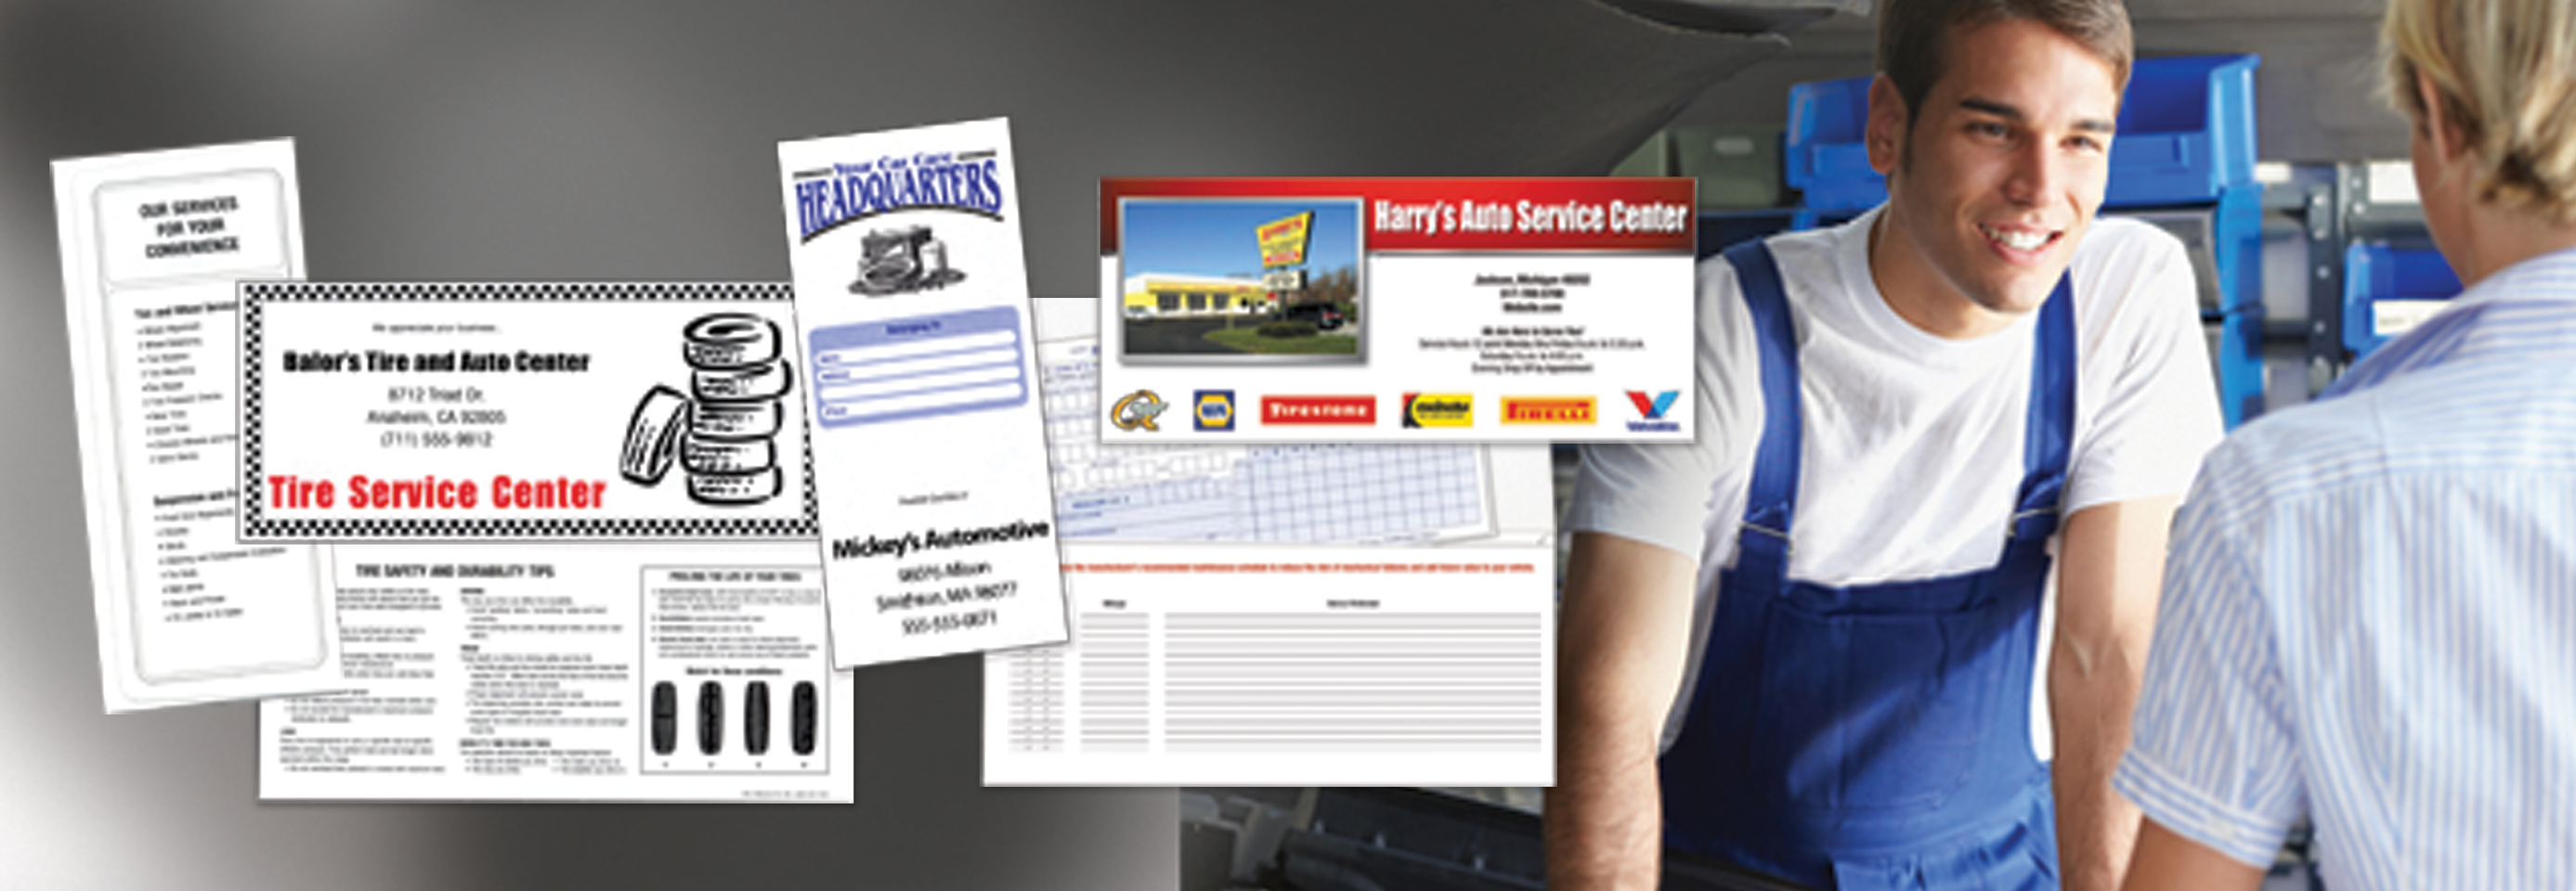 auto-service-repair-maintenance-repair-folders-receipt-car